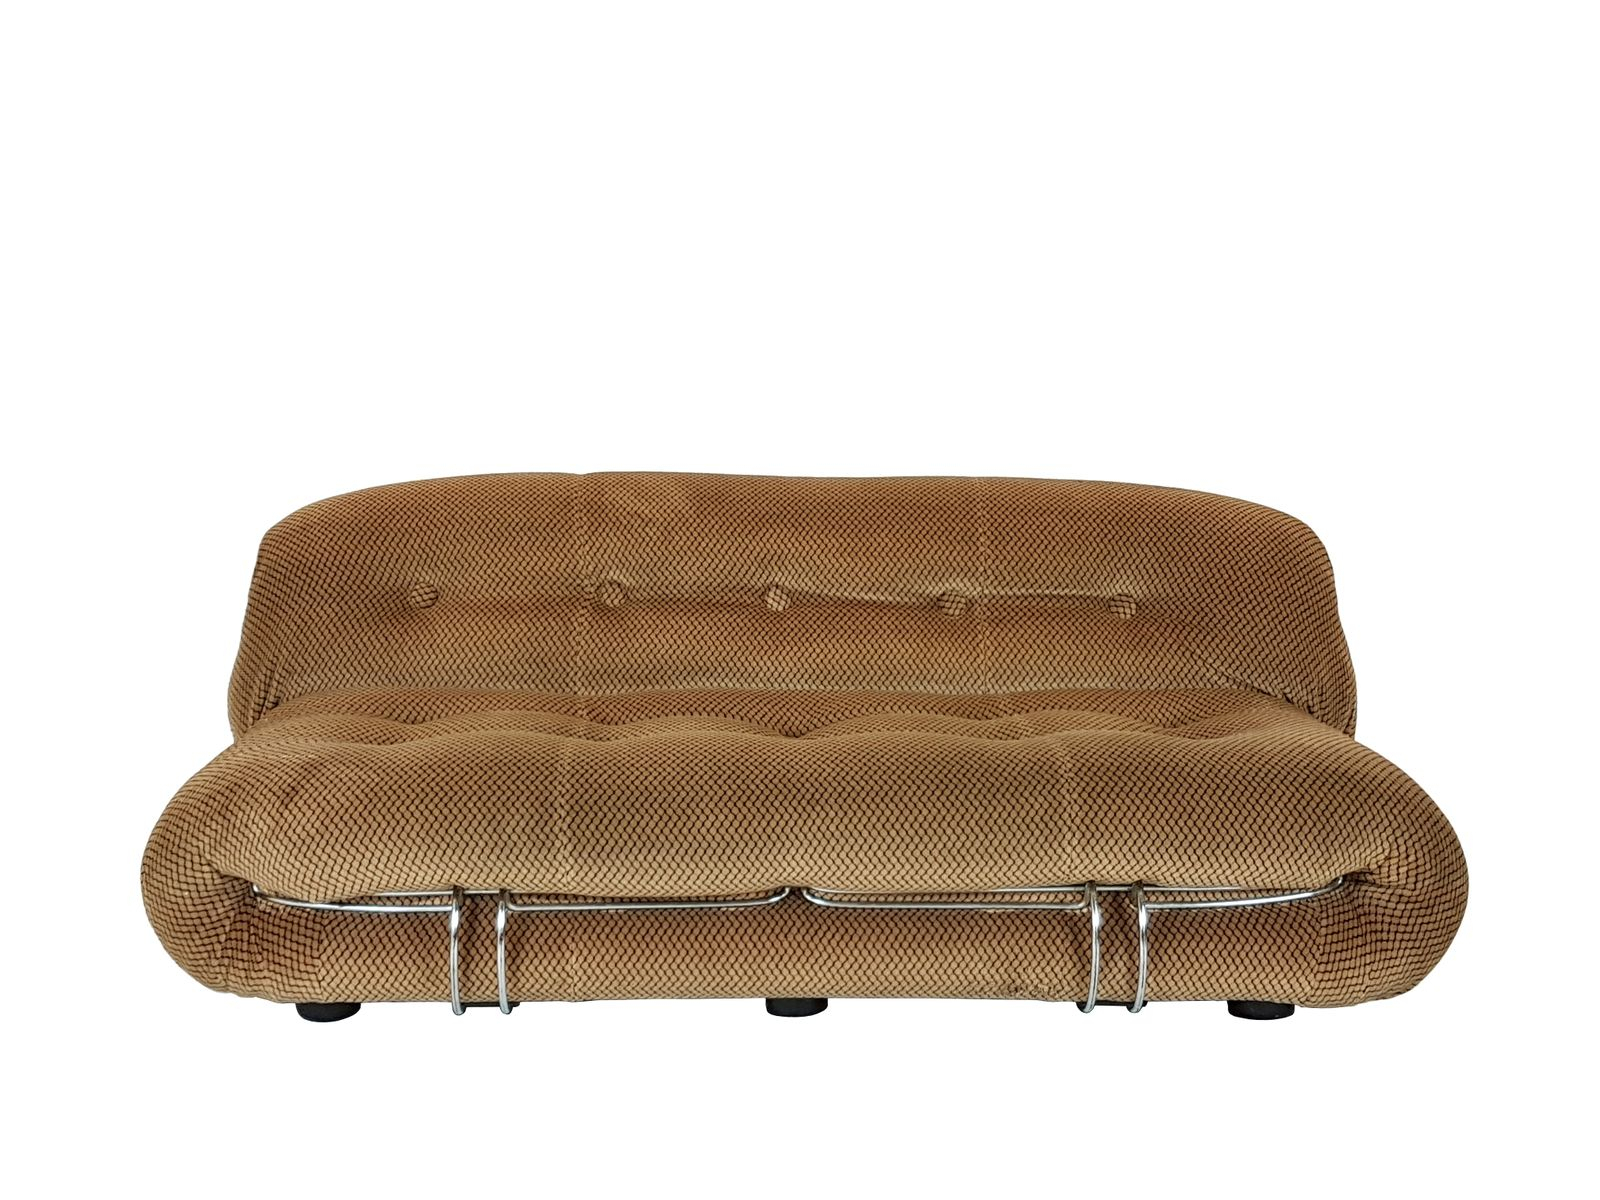 Optical Model Soriana Velvet Sofaafra & Tobia Scarpa For Cassina For London Optical Sofa Chairs (Image 16 of 20)